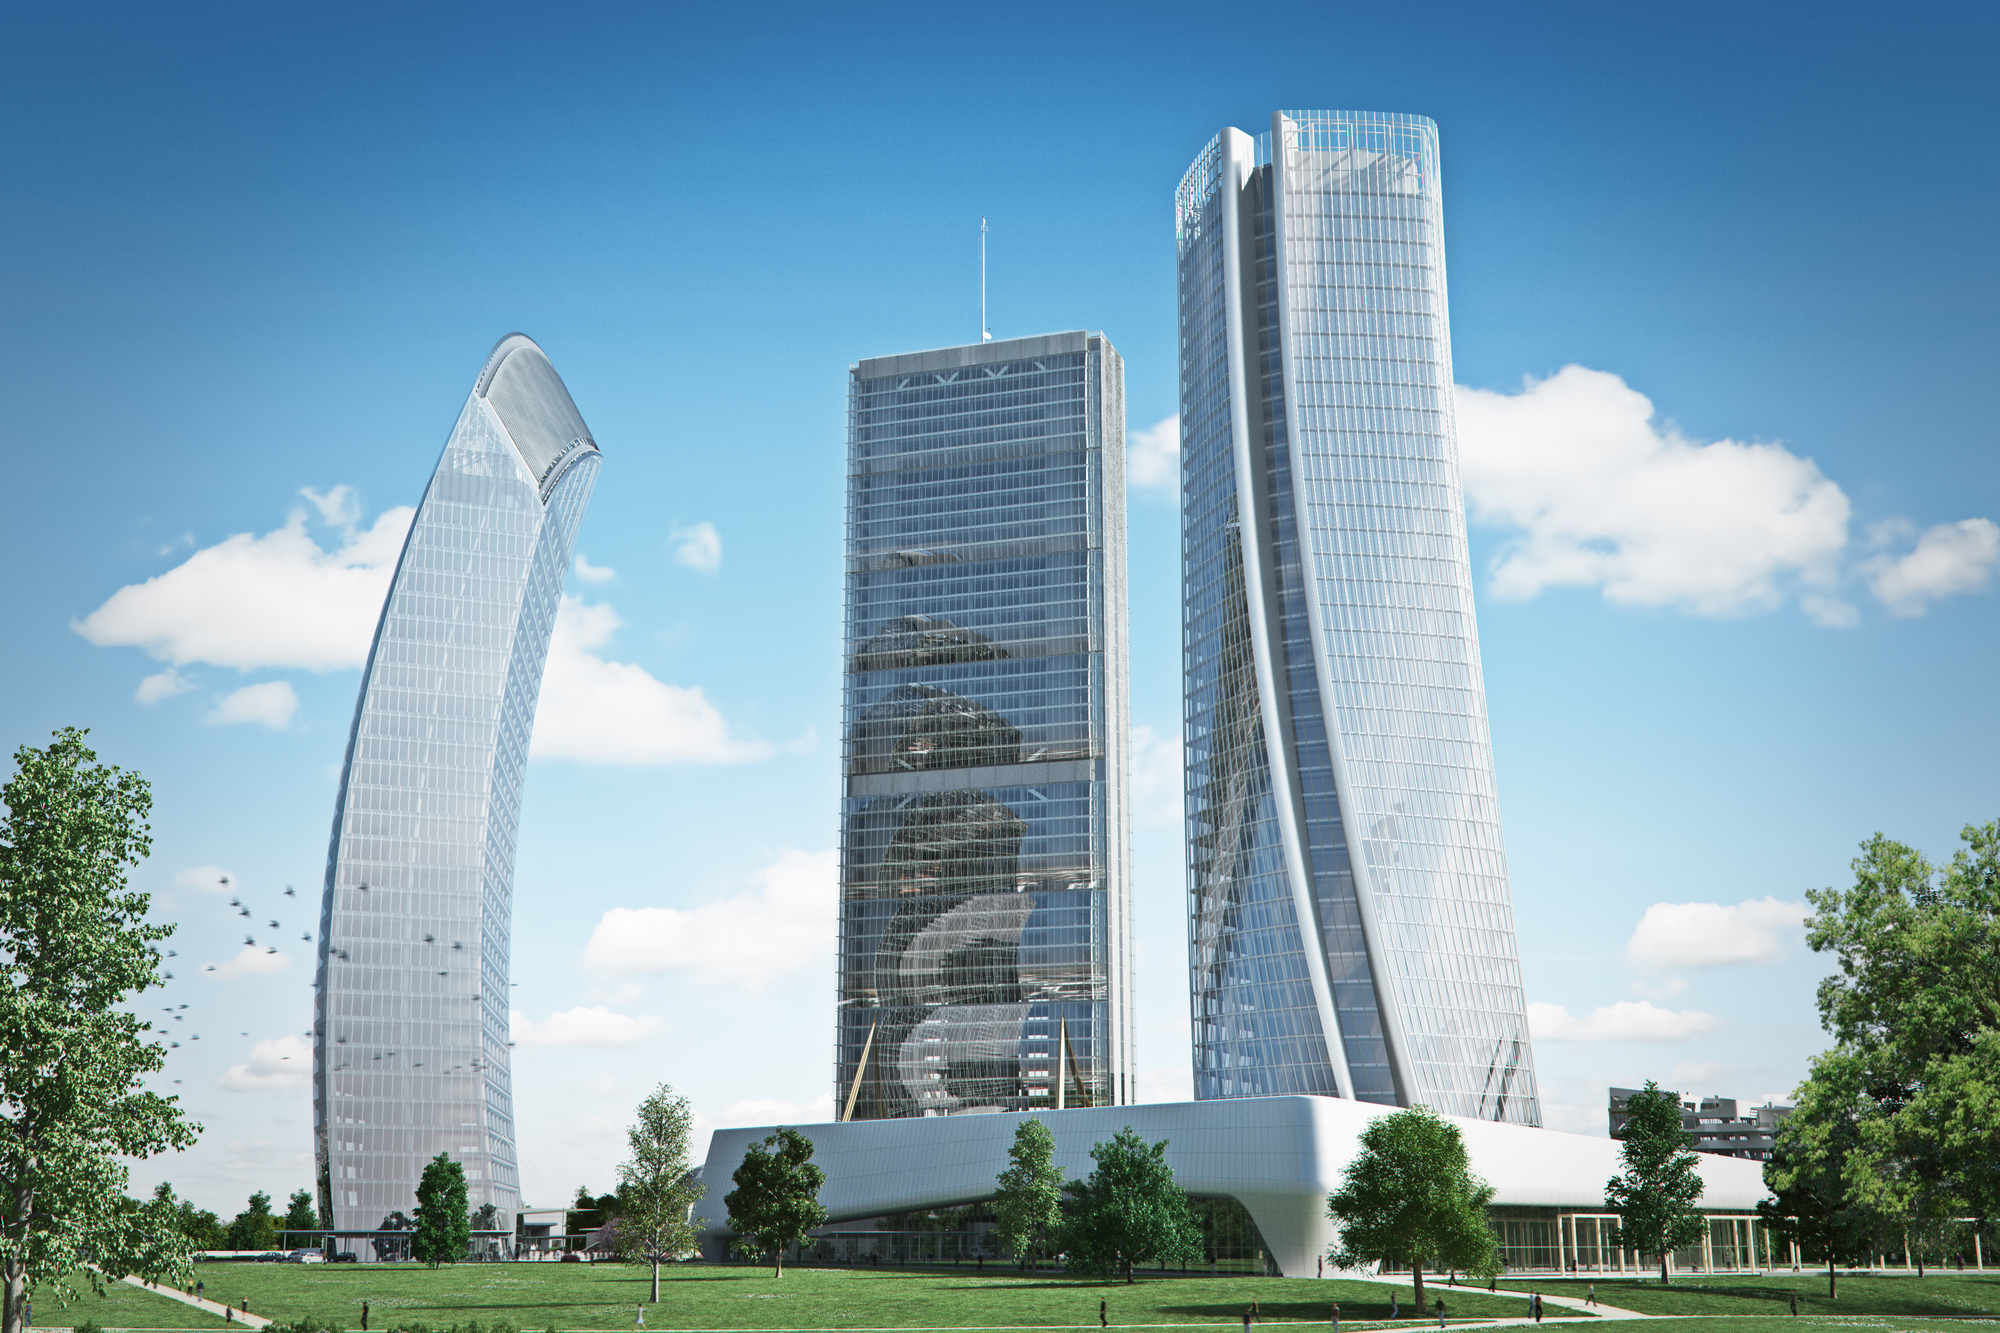 Gallery Of Zaha Hadid Architects Generali Tower Tops Out